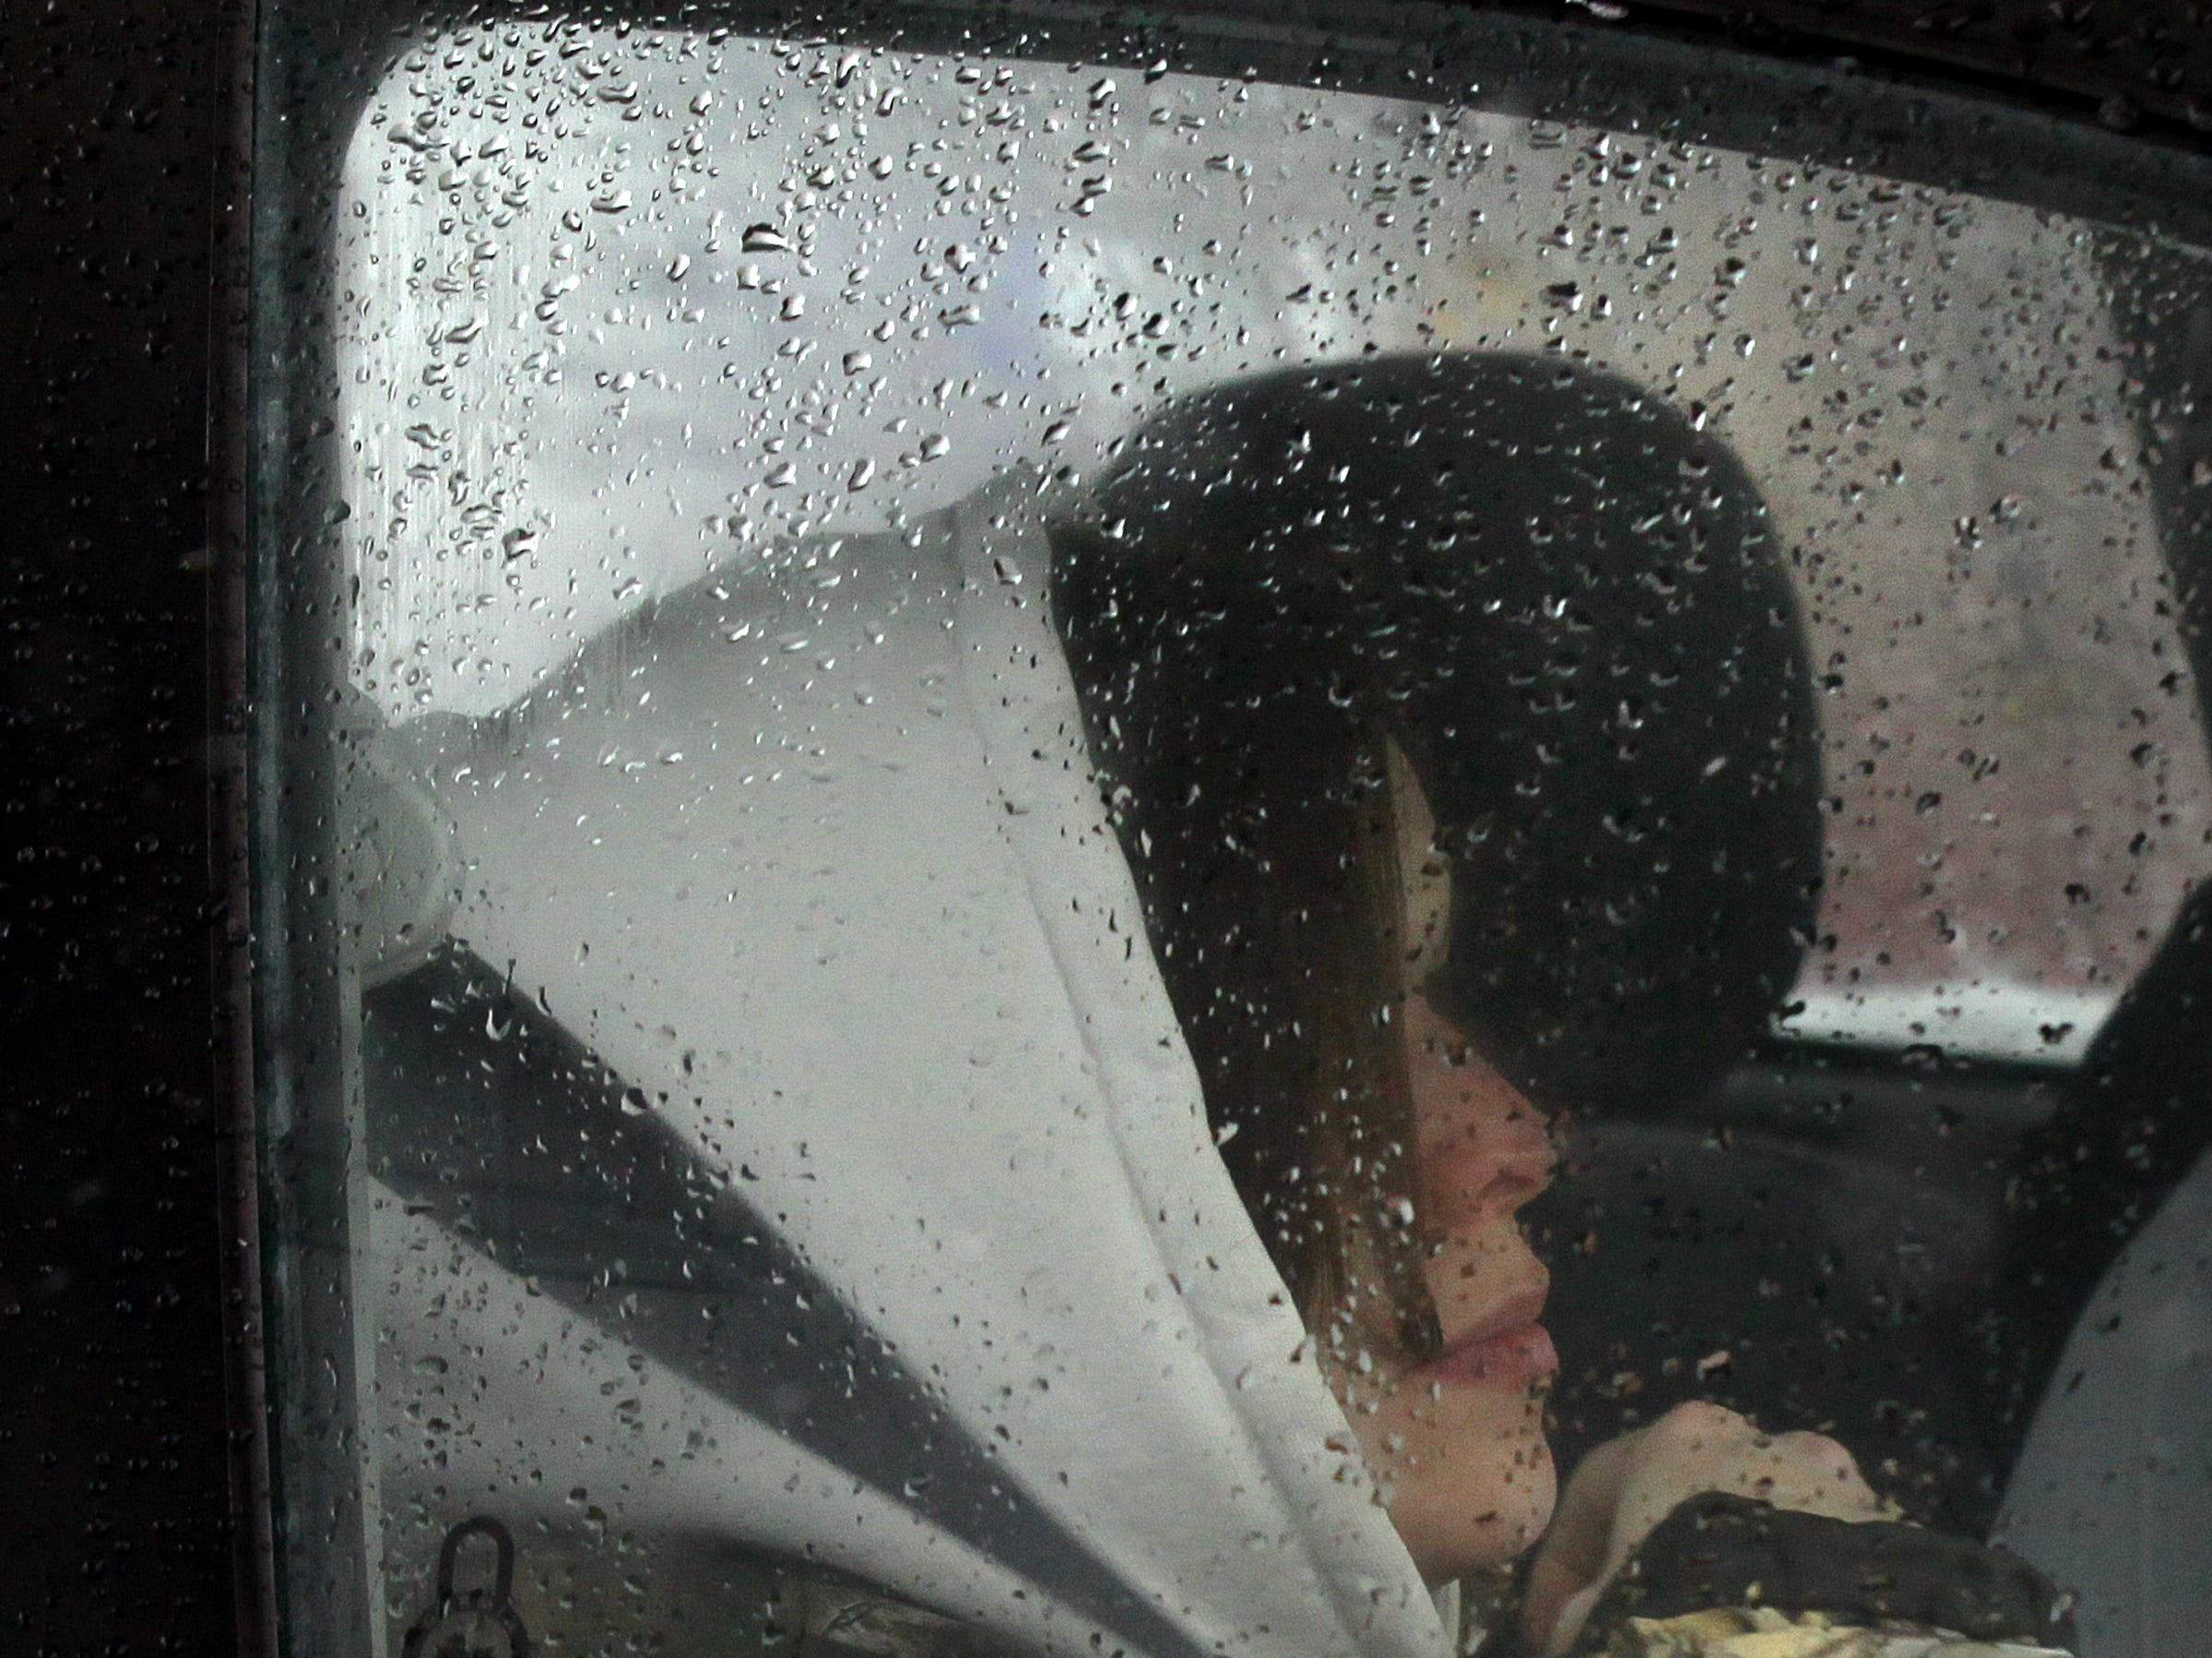 Tonya Eskew of Anderson bundles up in a vehicle her husband Brandon Eskew drove around for some necessities, including gas for the car during the first snow of 2014.